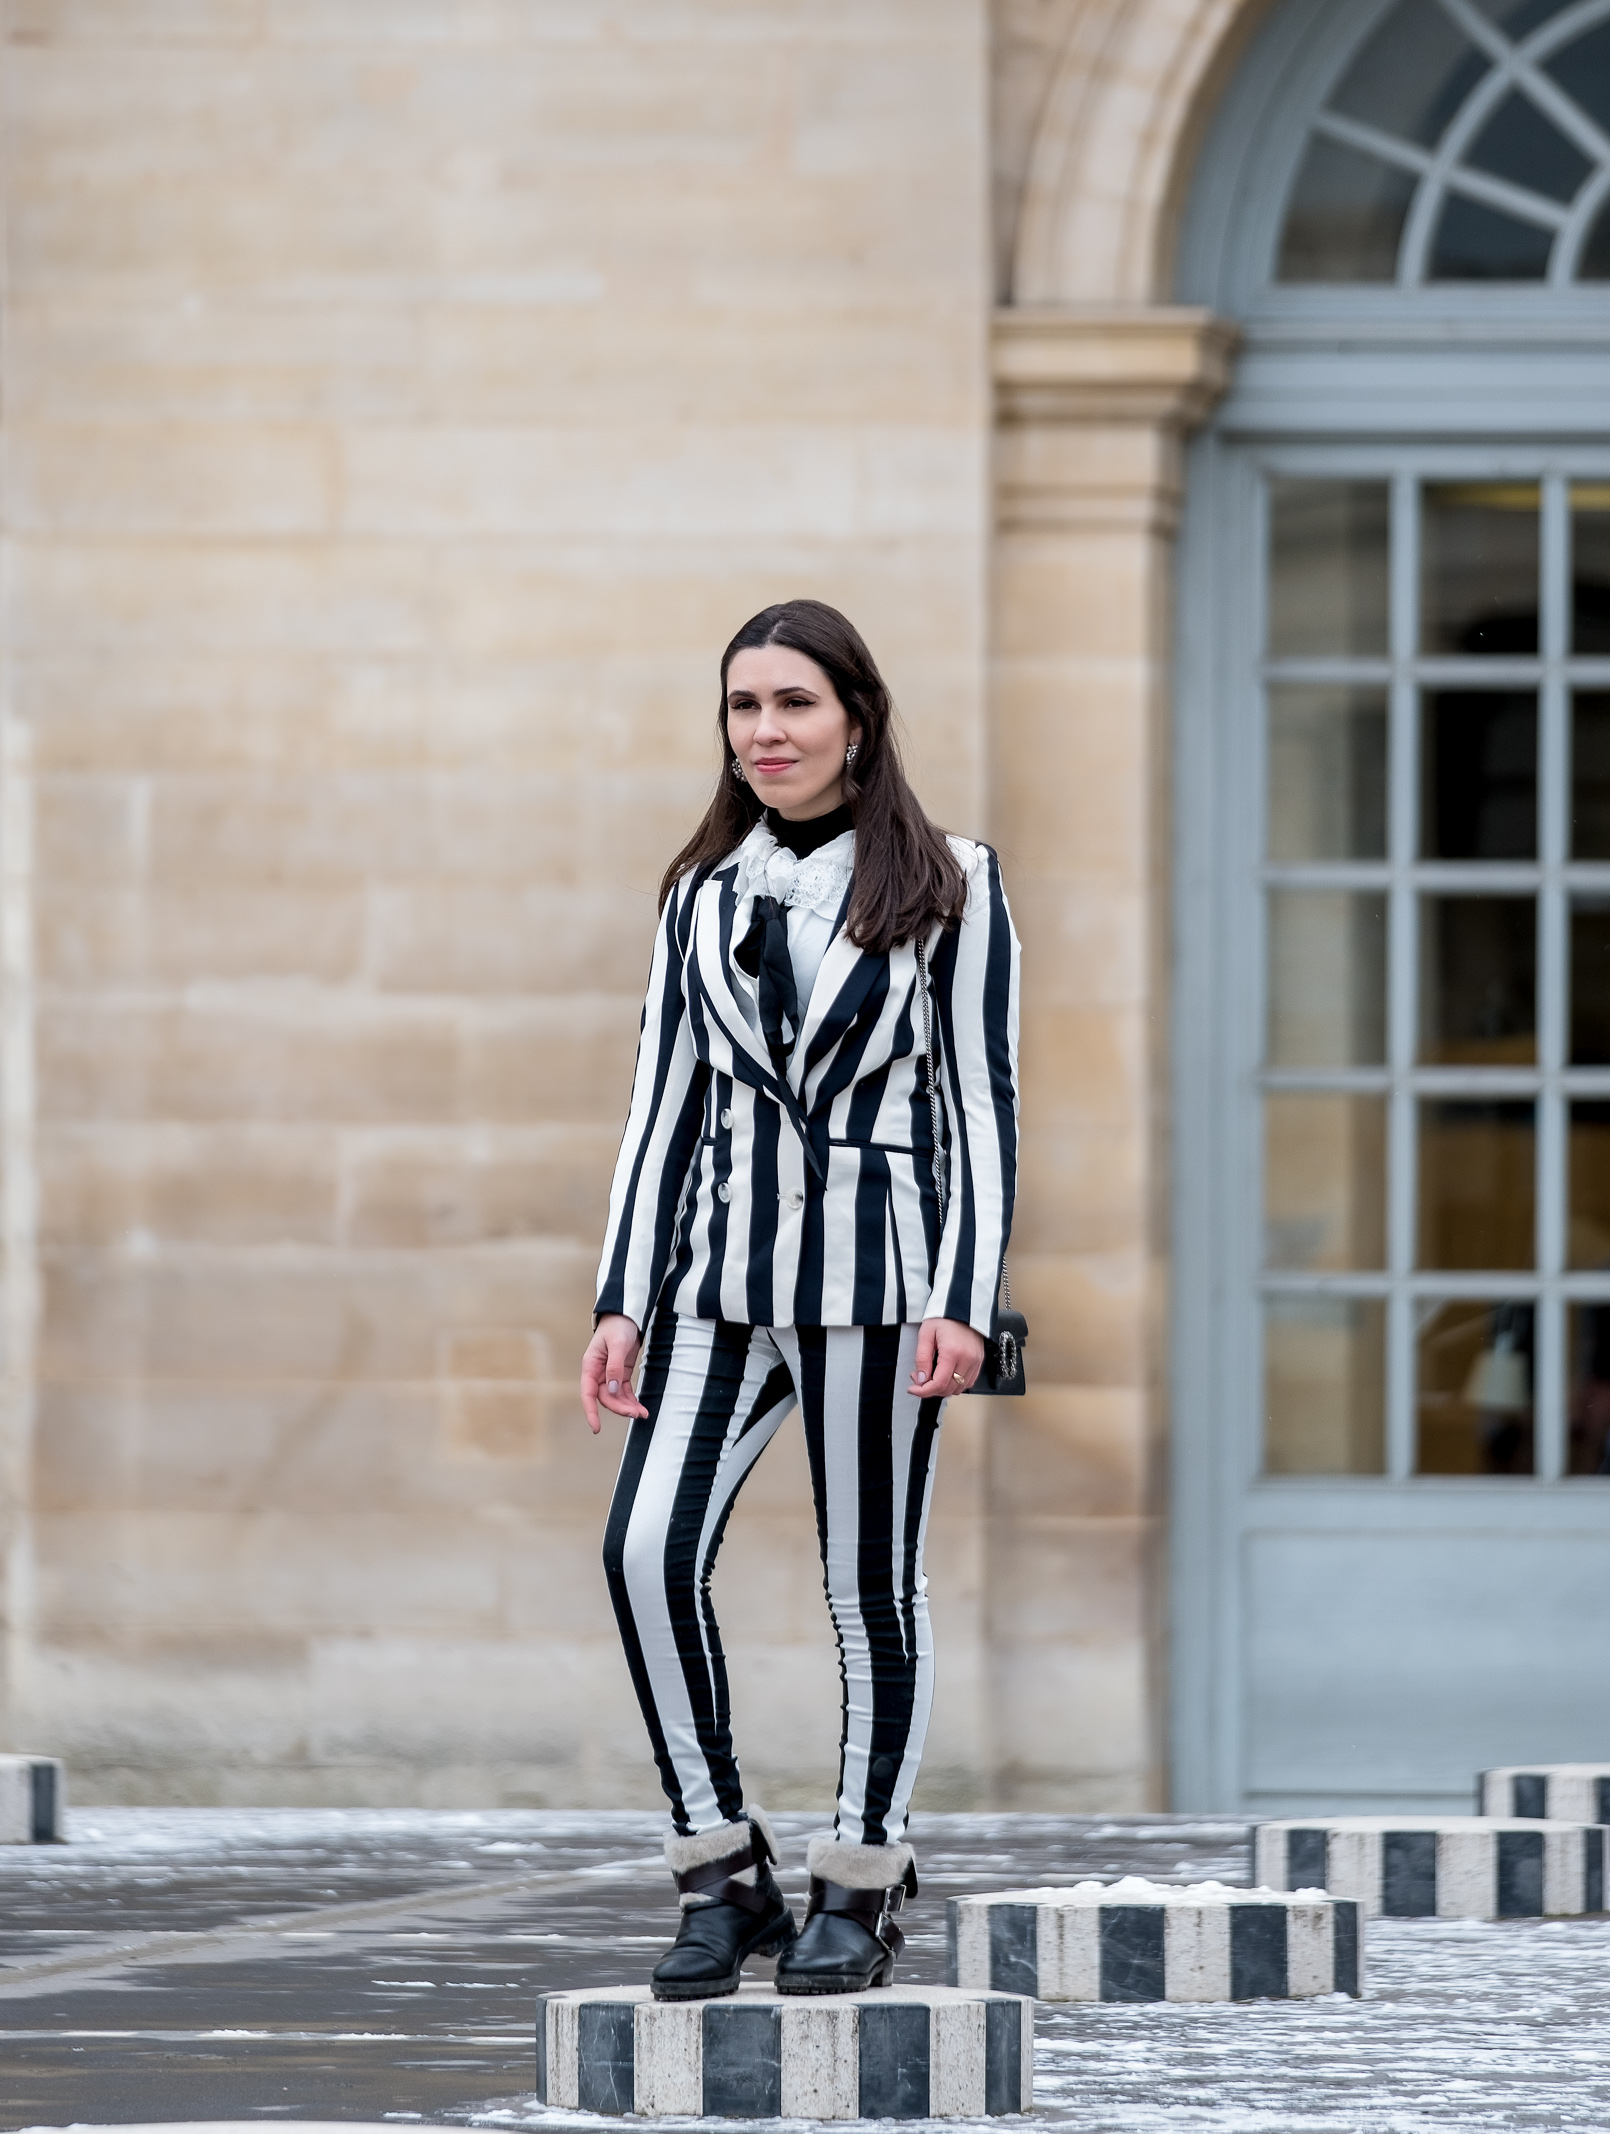 Le Fashionaire stripes black white hm blazer black white vertical stripes hm trousers gucci mini dionysus black silver tiger bag black zara boots 2225 EN stripes black white hm blazer black white vertical stripes hm trousers gucci mini dionysus black silver tiger bag black zara boots 2225 EN